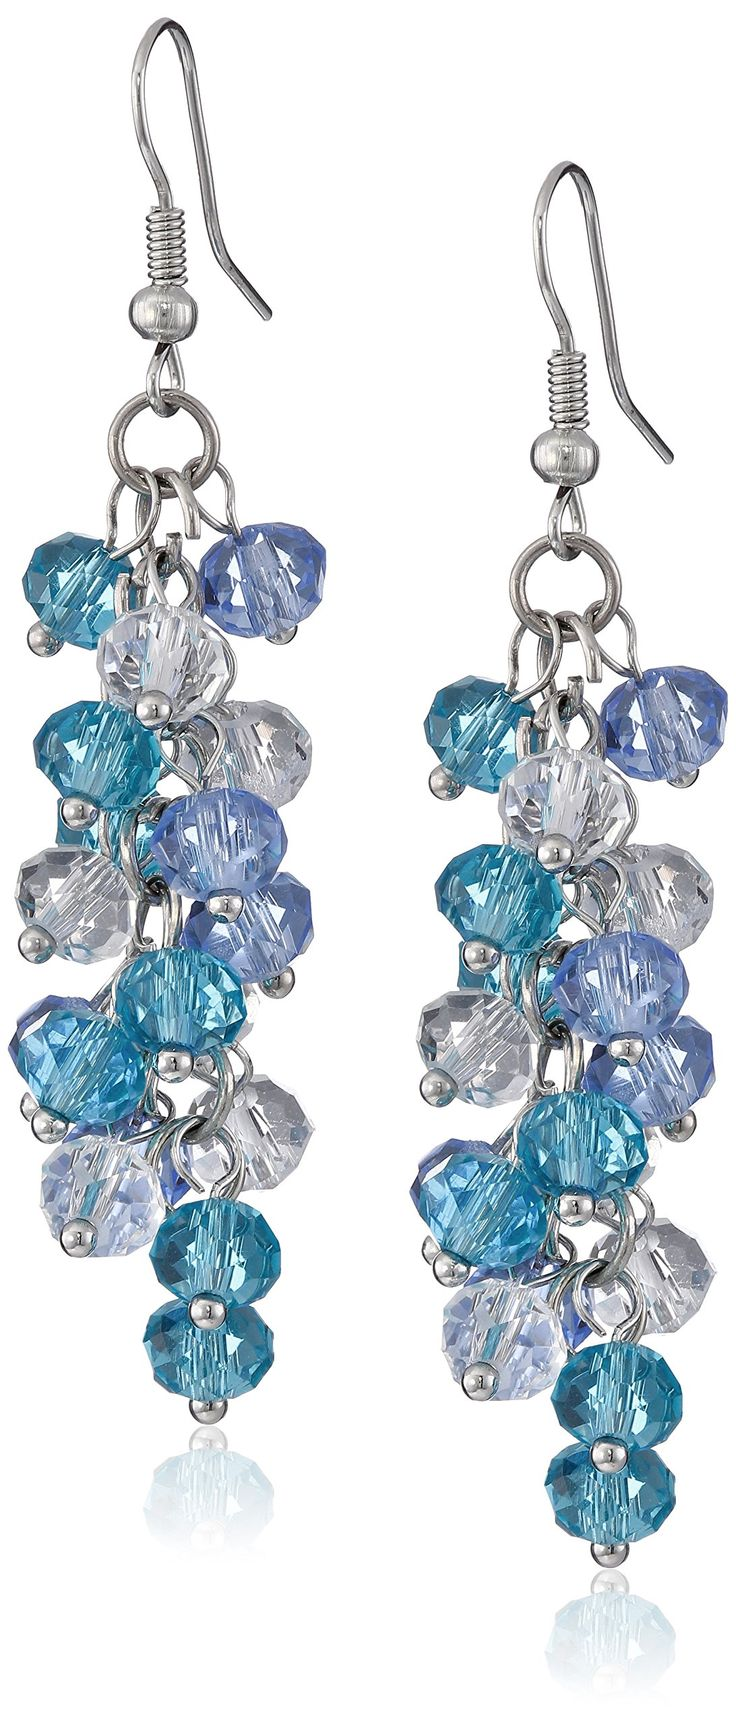 "Ocean Blue Cluster Faceted Crystal Dangle Hook Earrings For Women 2"":"